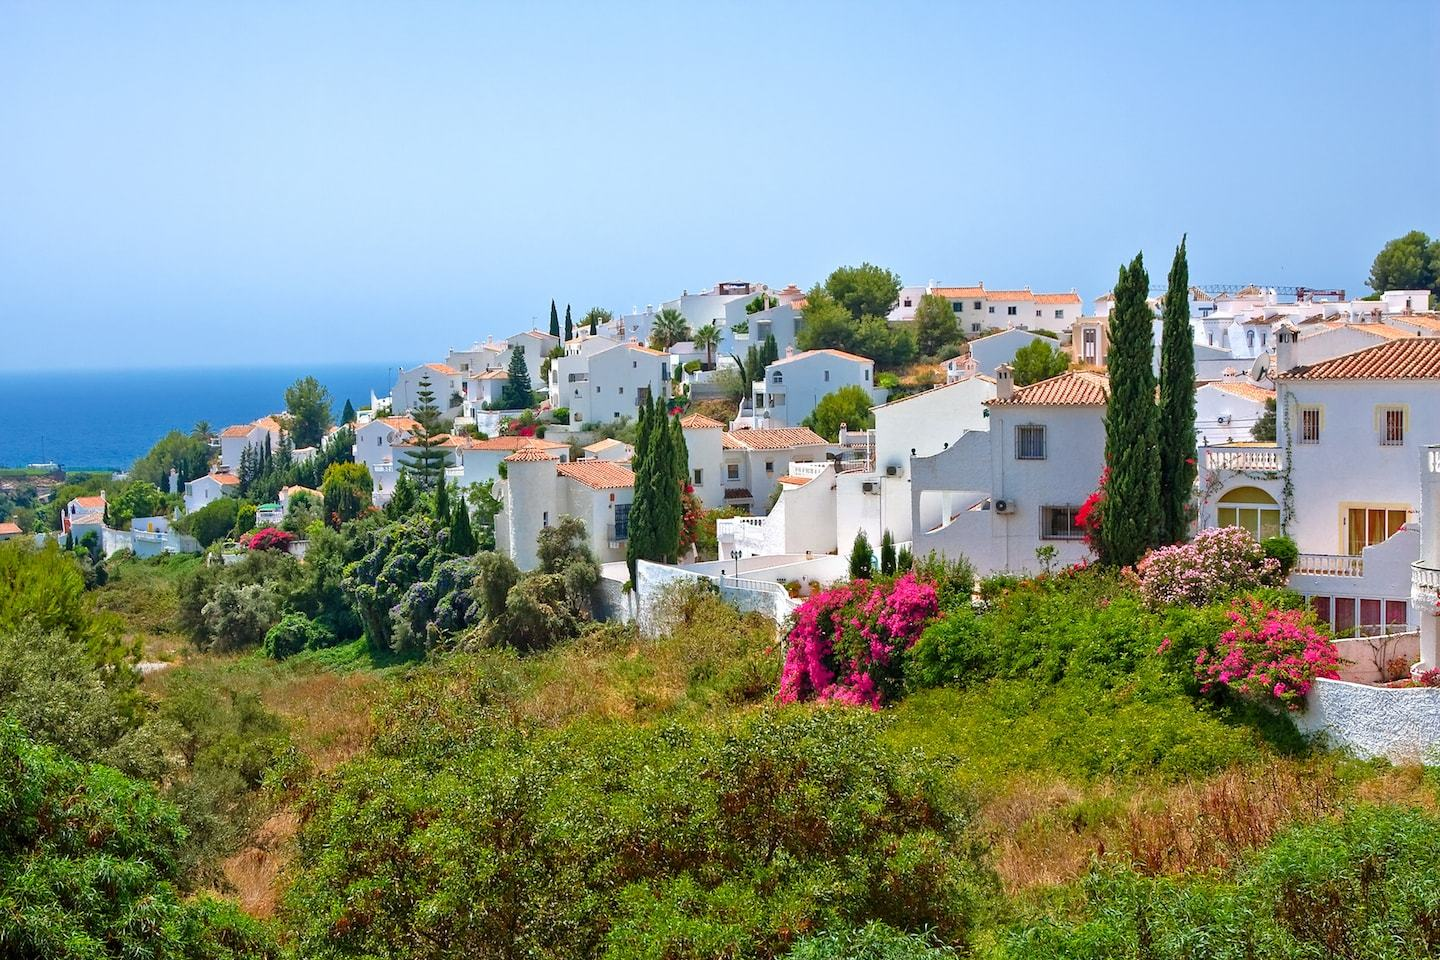 White houses sitting on green hills over ocean in Spain